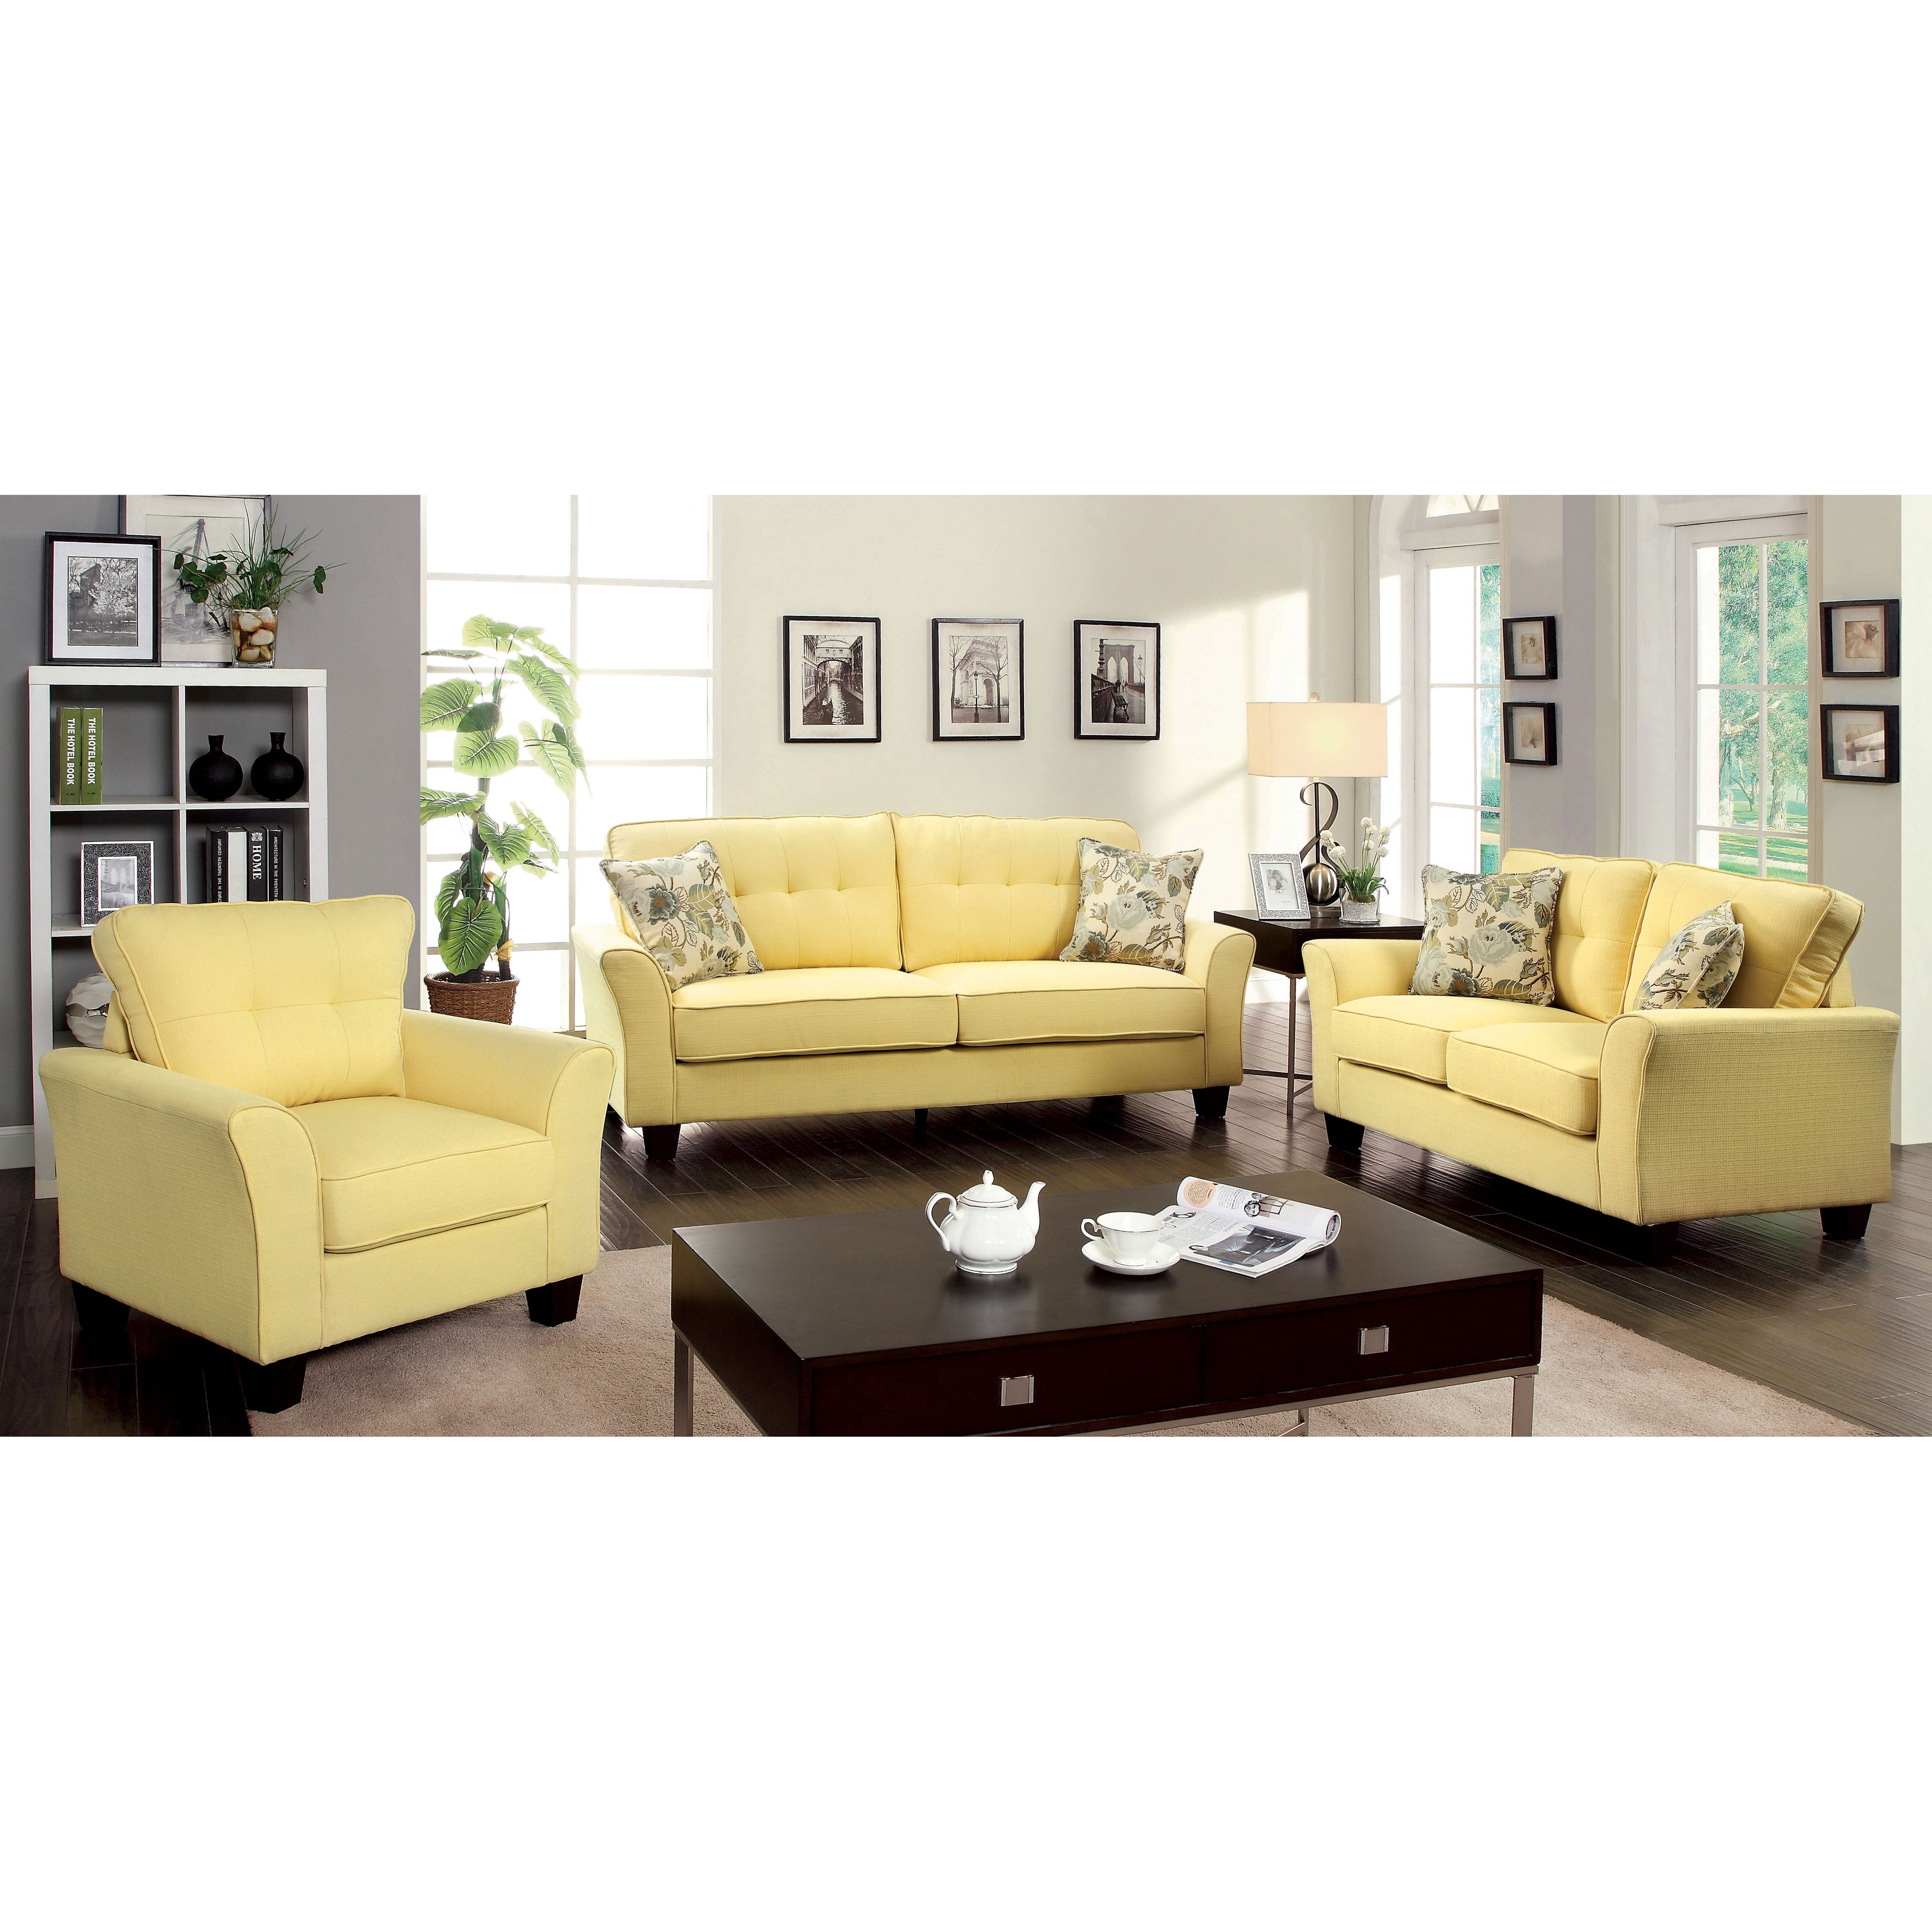 Furniture Of America Primavera Modern 3 Piece Linen Living Room Set   Free  Shipping Today   Overstock   16545101